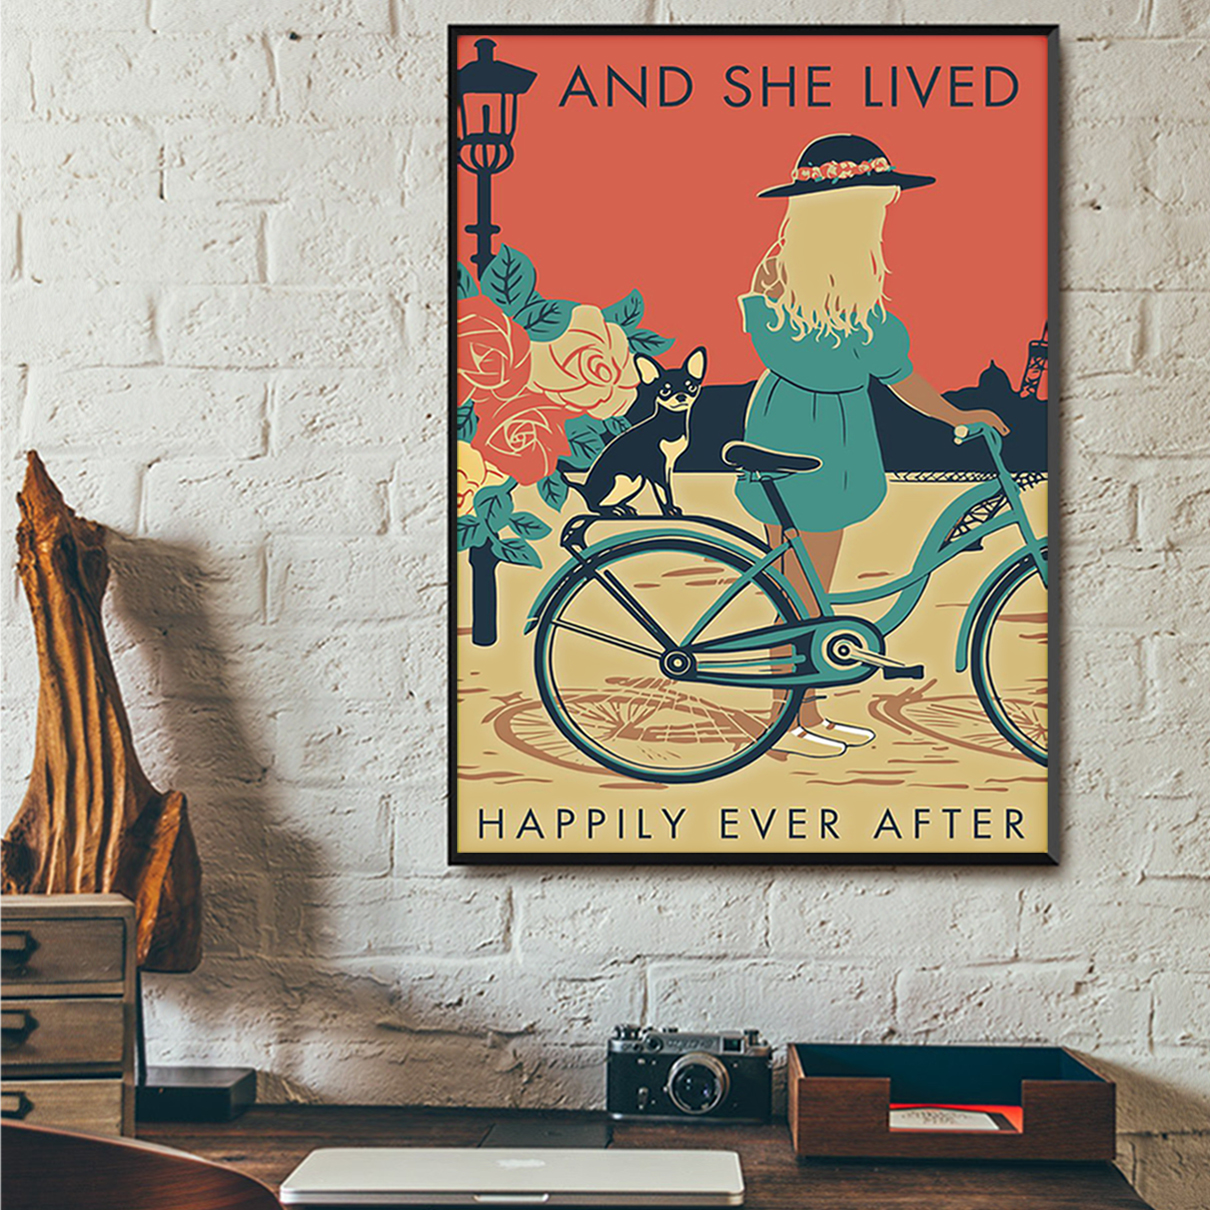 Girl with black chihuahua and she lived happily ever after poster A1